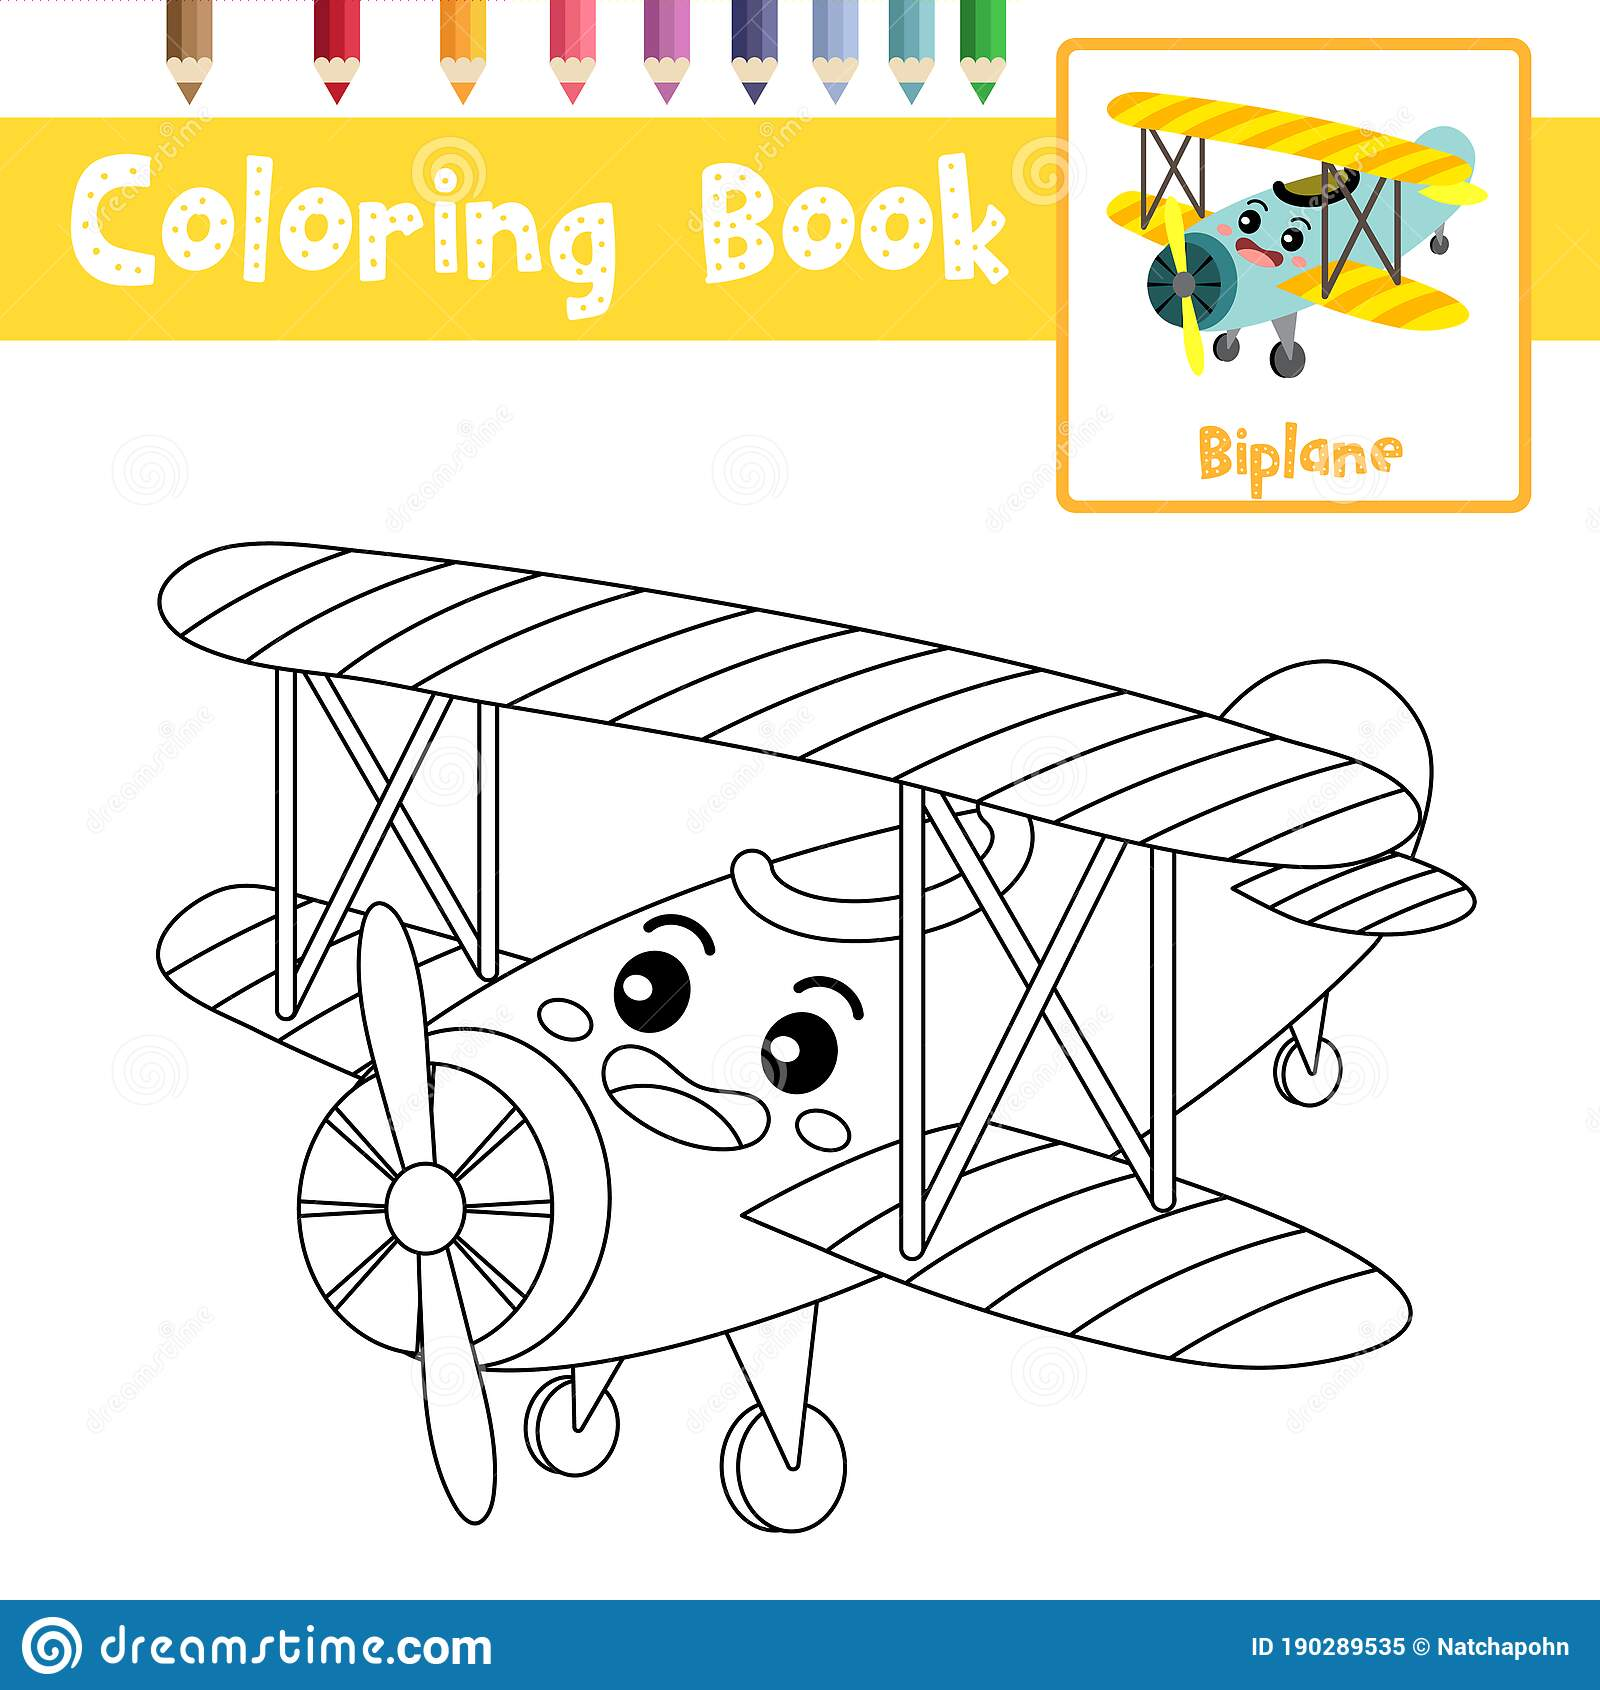 Coloring Page Biplane Cartoon Character Perspective View